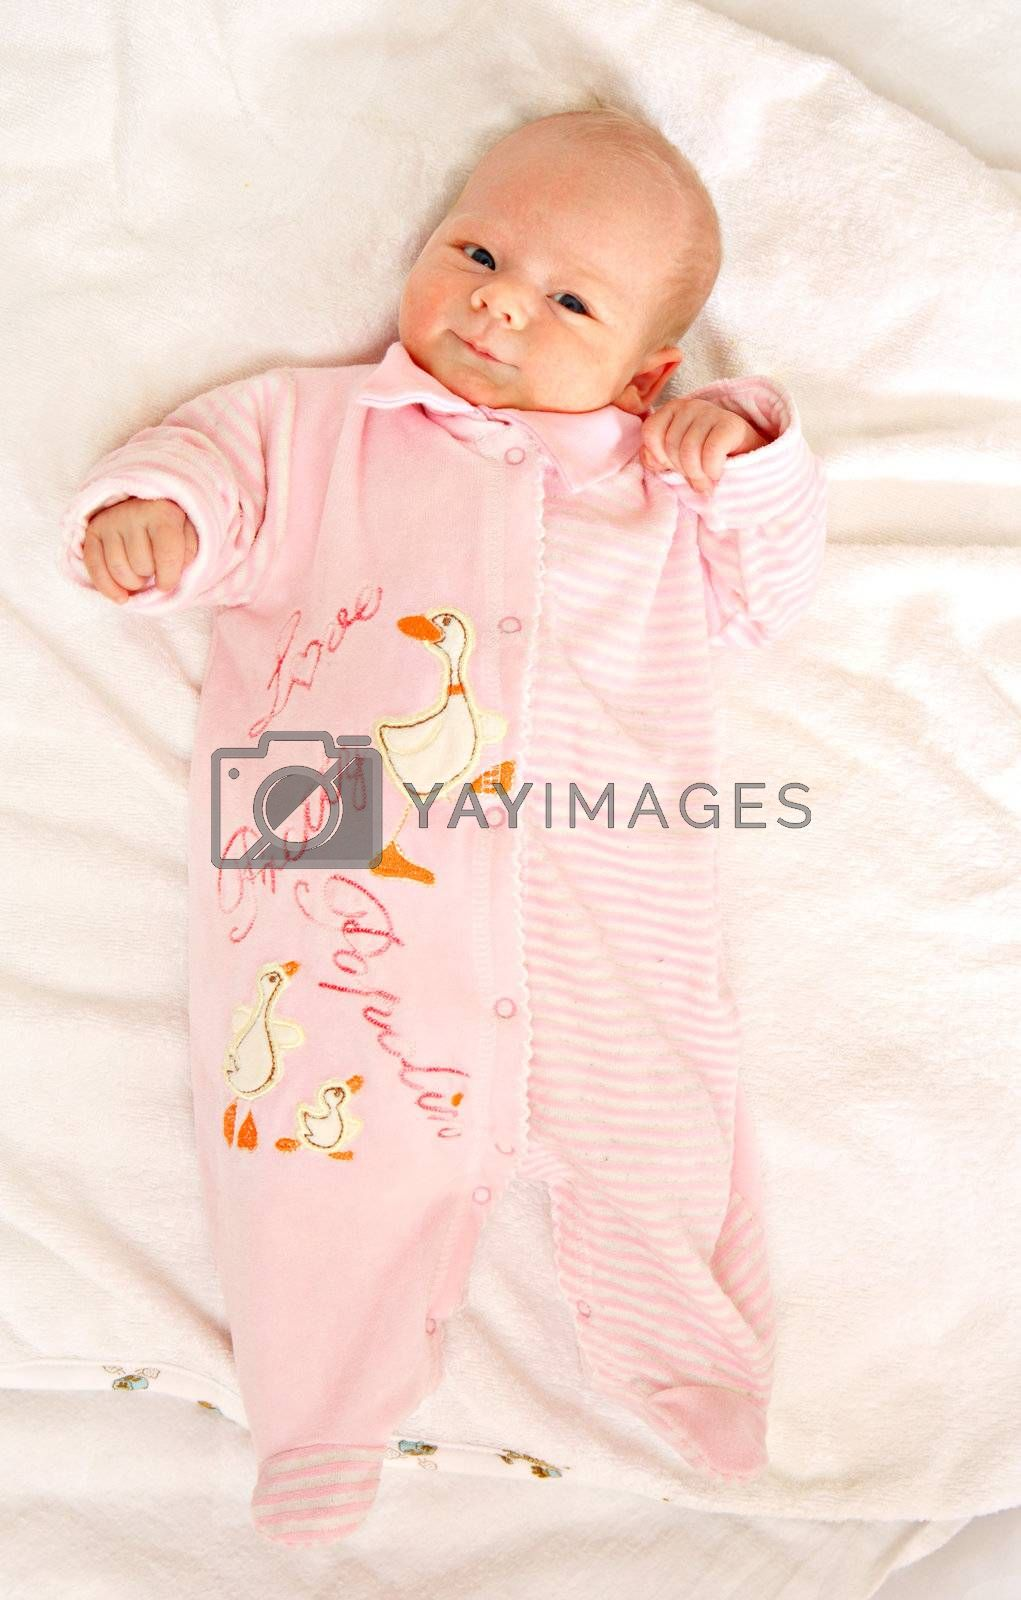 The newborn girl in pink clothes on a white background